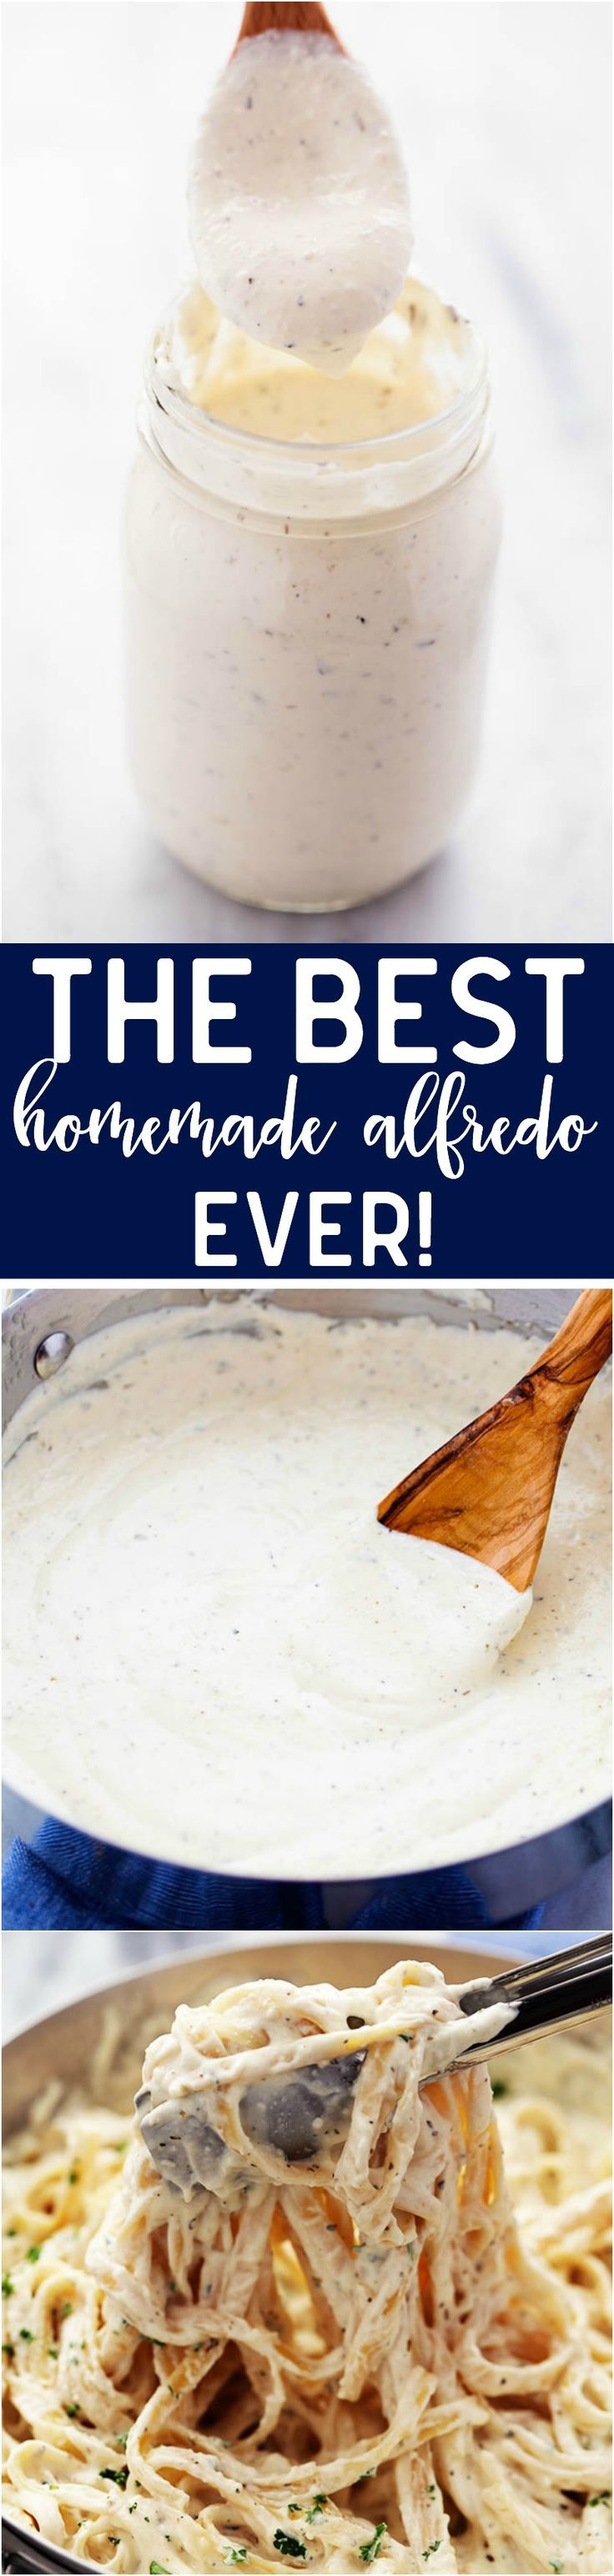 The most creamy and delicious homemade alfredo sauce that you will ever make! This is a tried and true recipe and you will agree that it is the best recipe out there! (Cheese Making Easy)